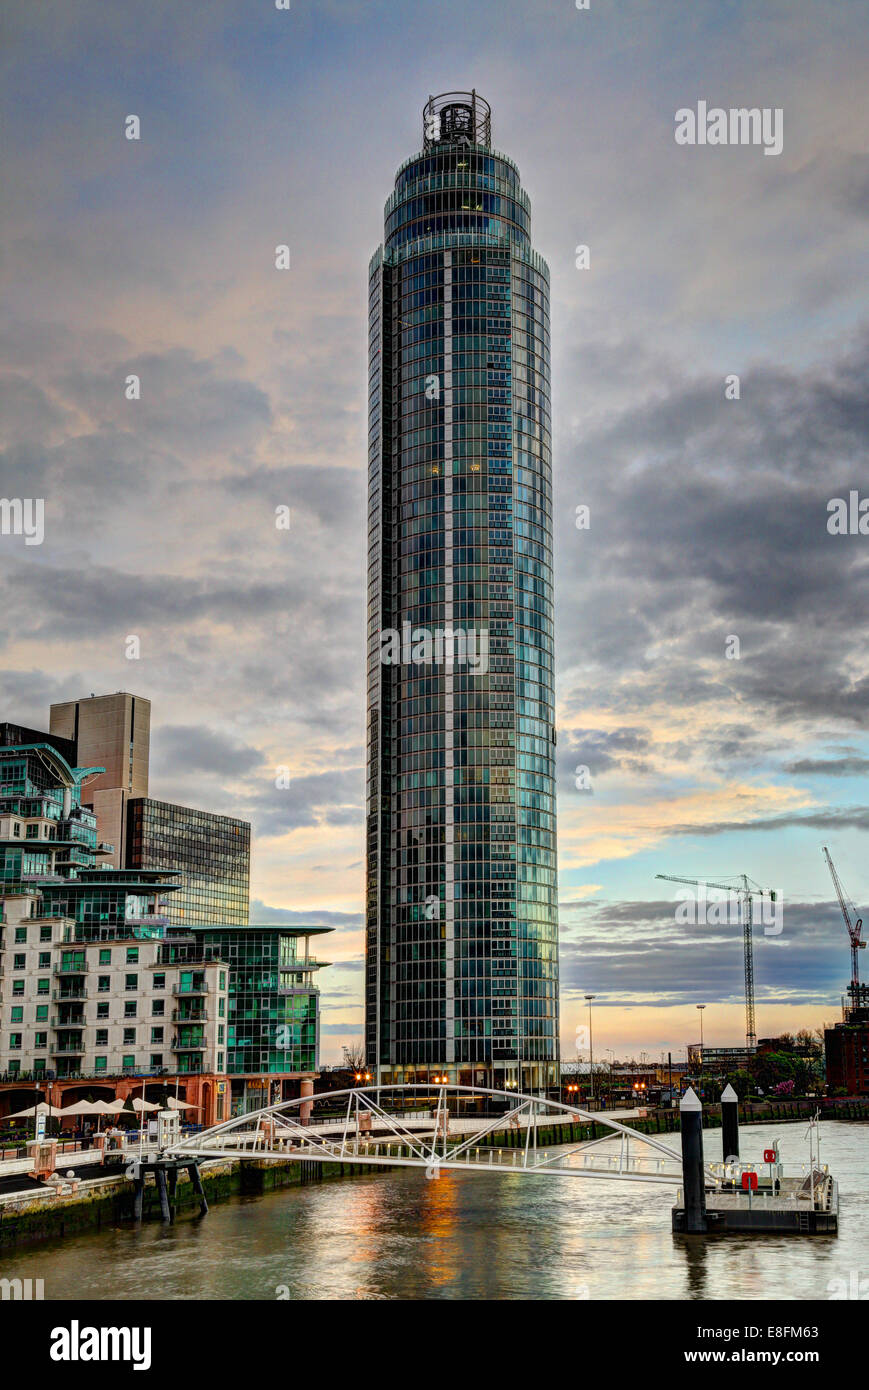 London, UK-Vauxhall-Turm Stockbild